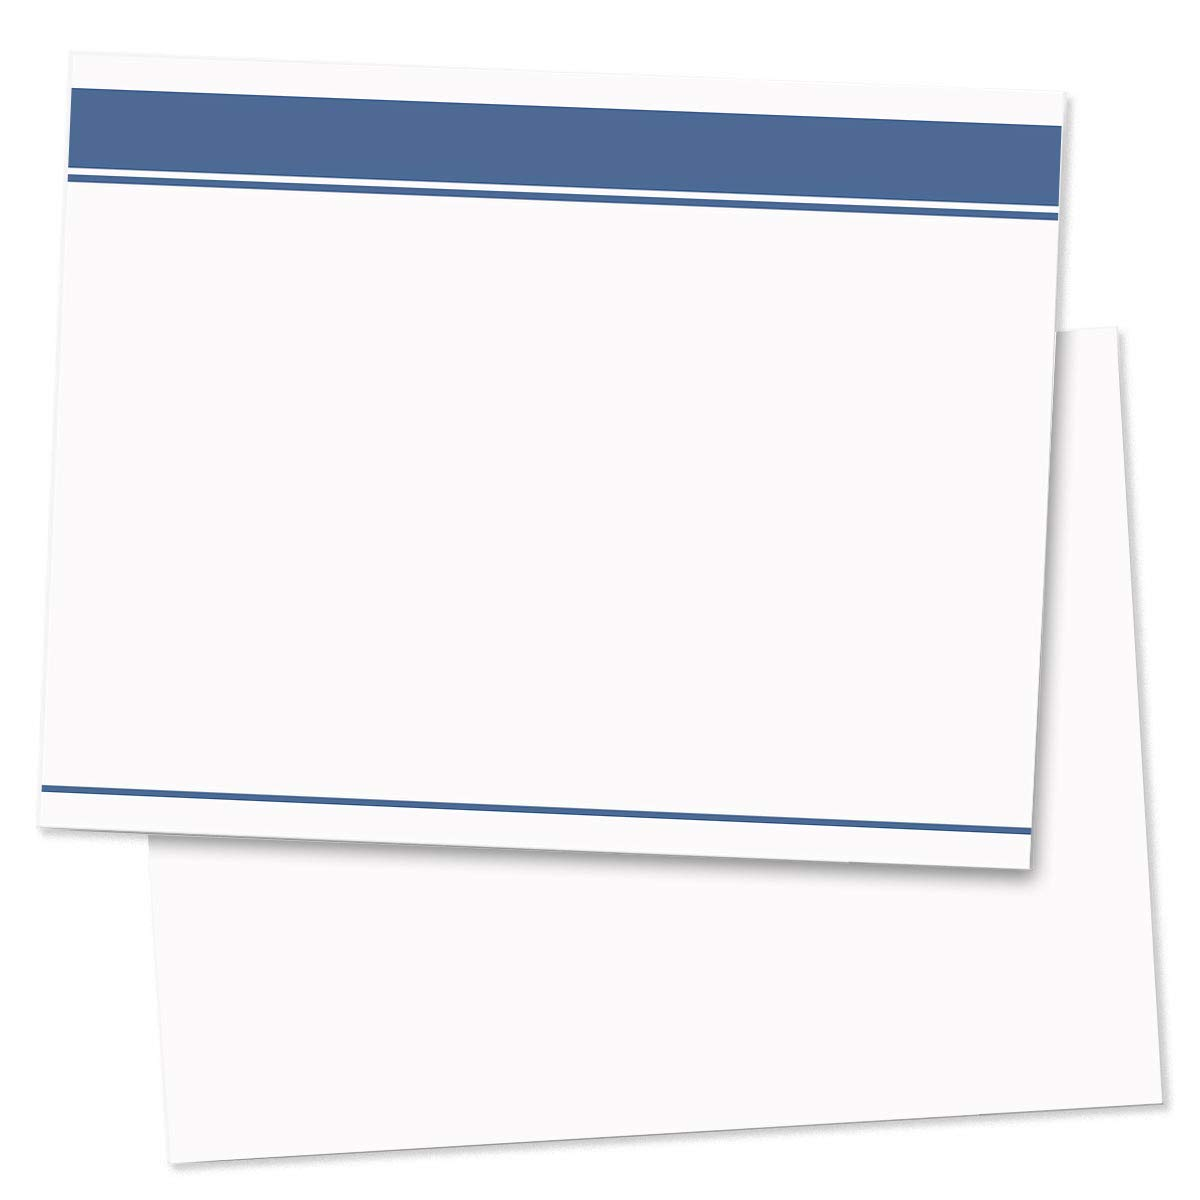 Blue Striped Postcards, Jumbo Size, 200 Count